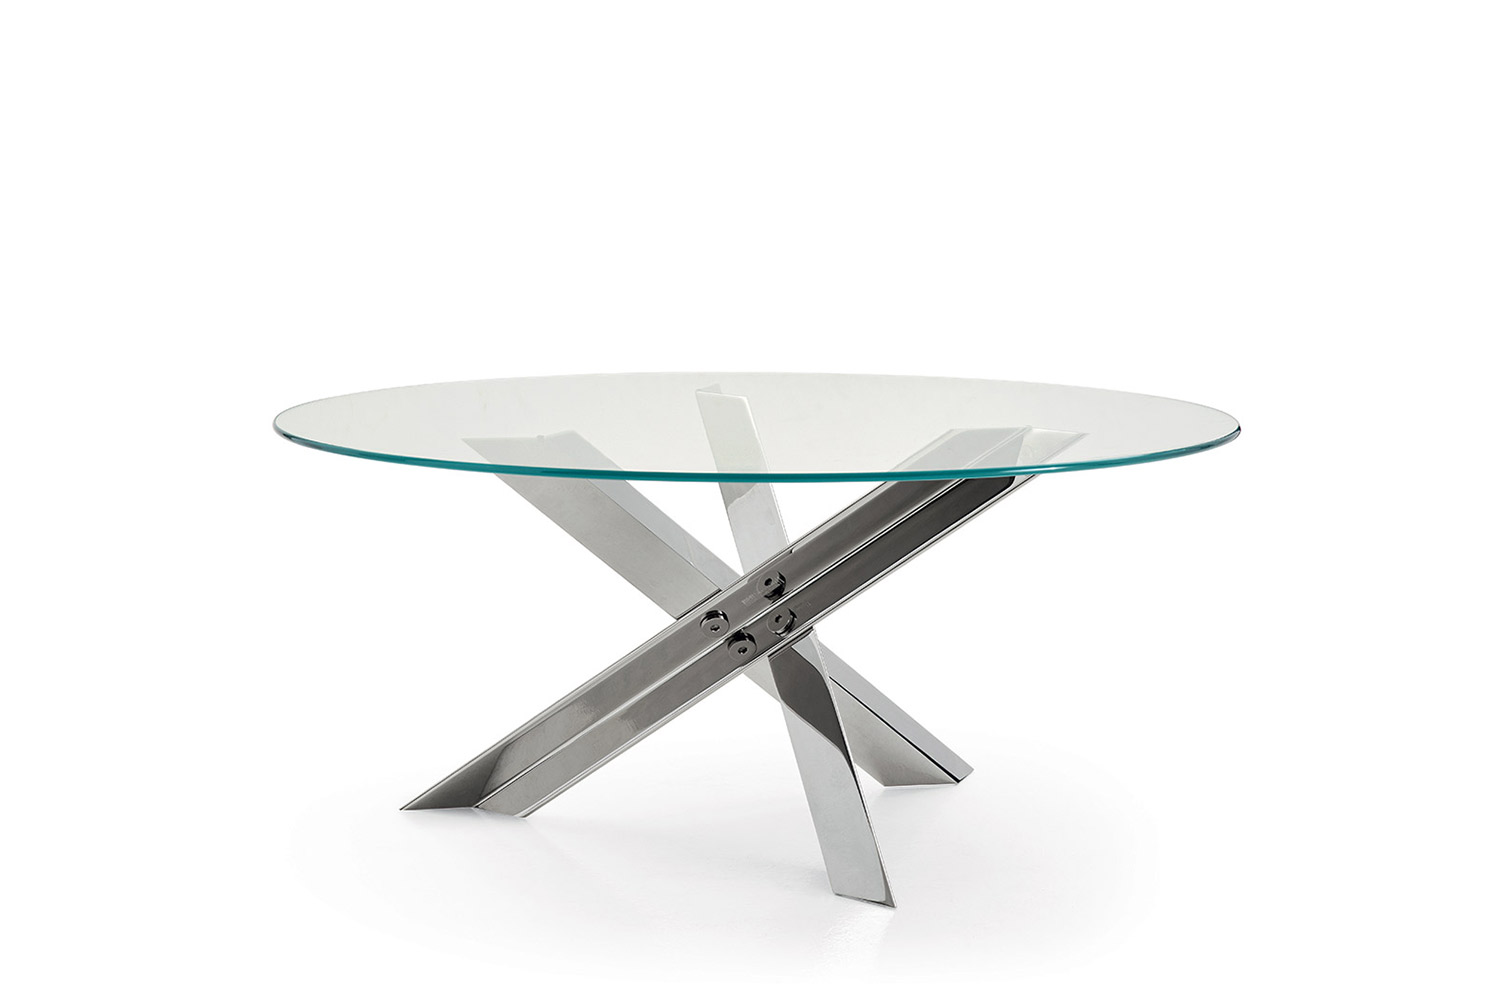 Mario-Bellini-Bolt-Table_04.jpg